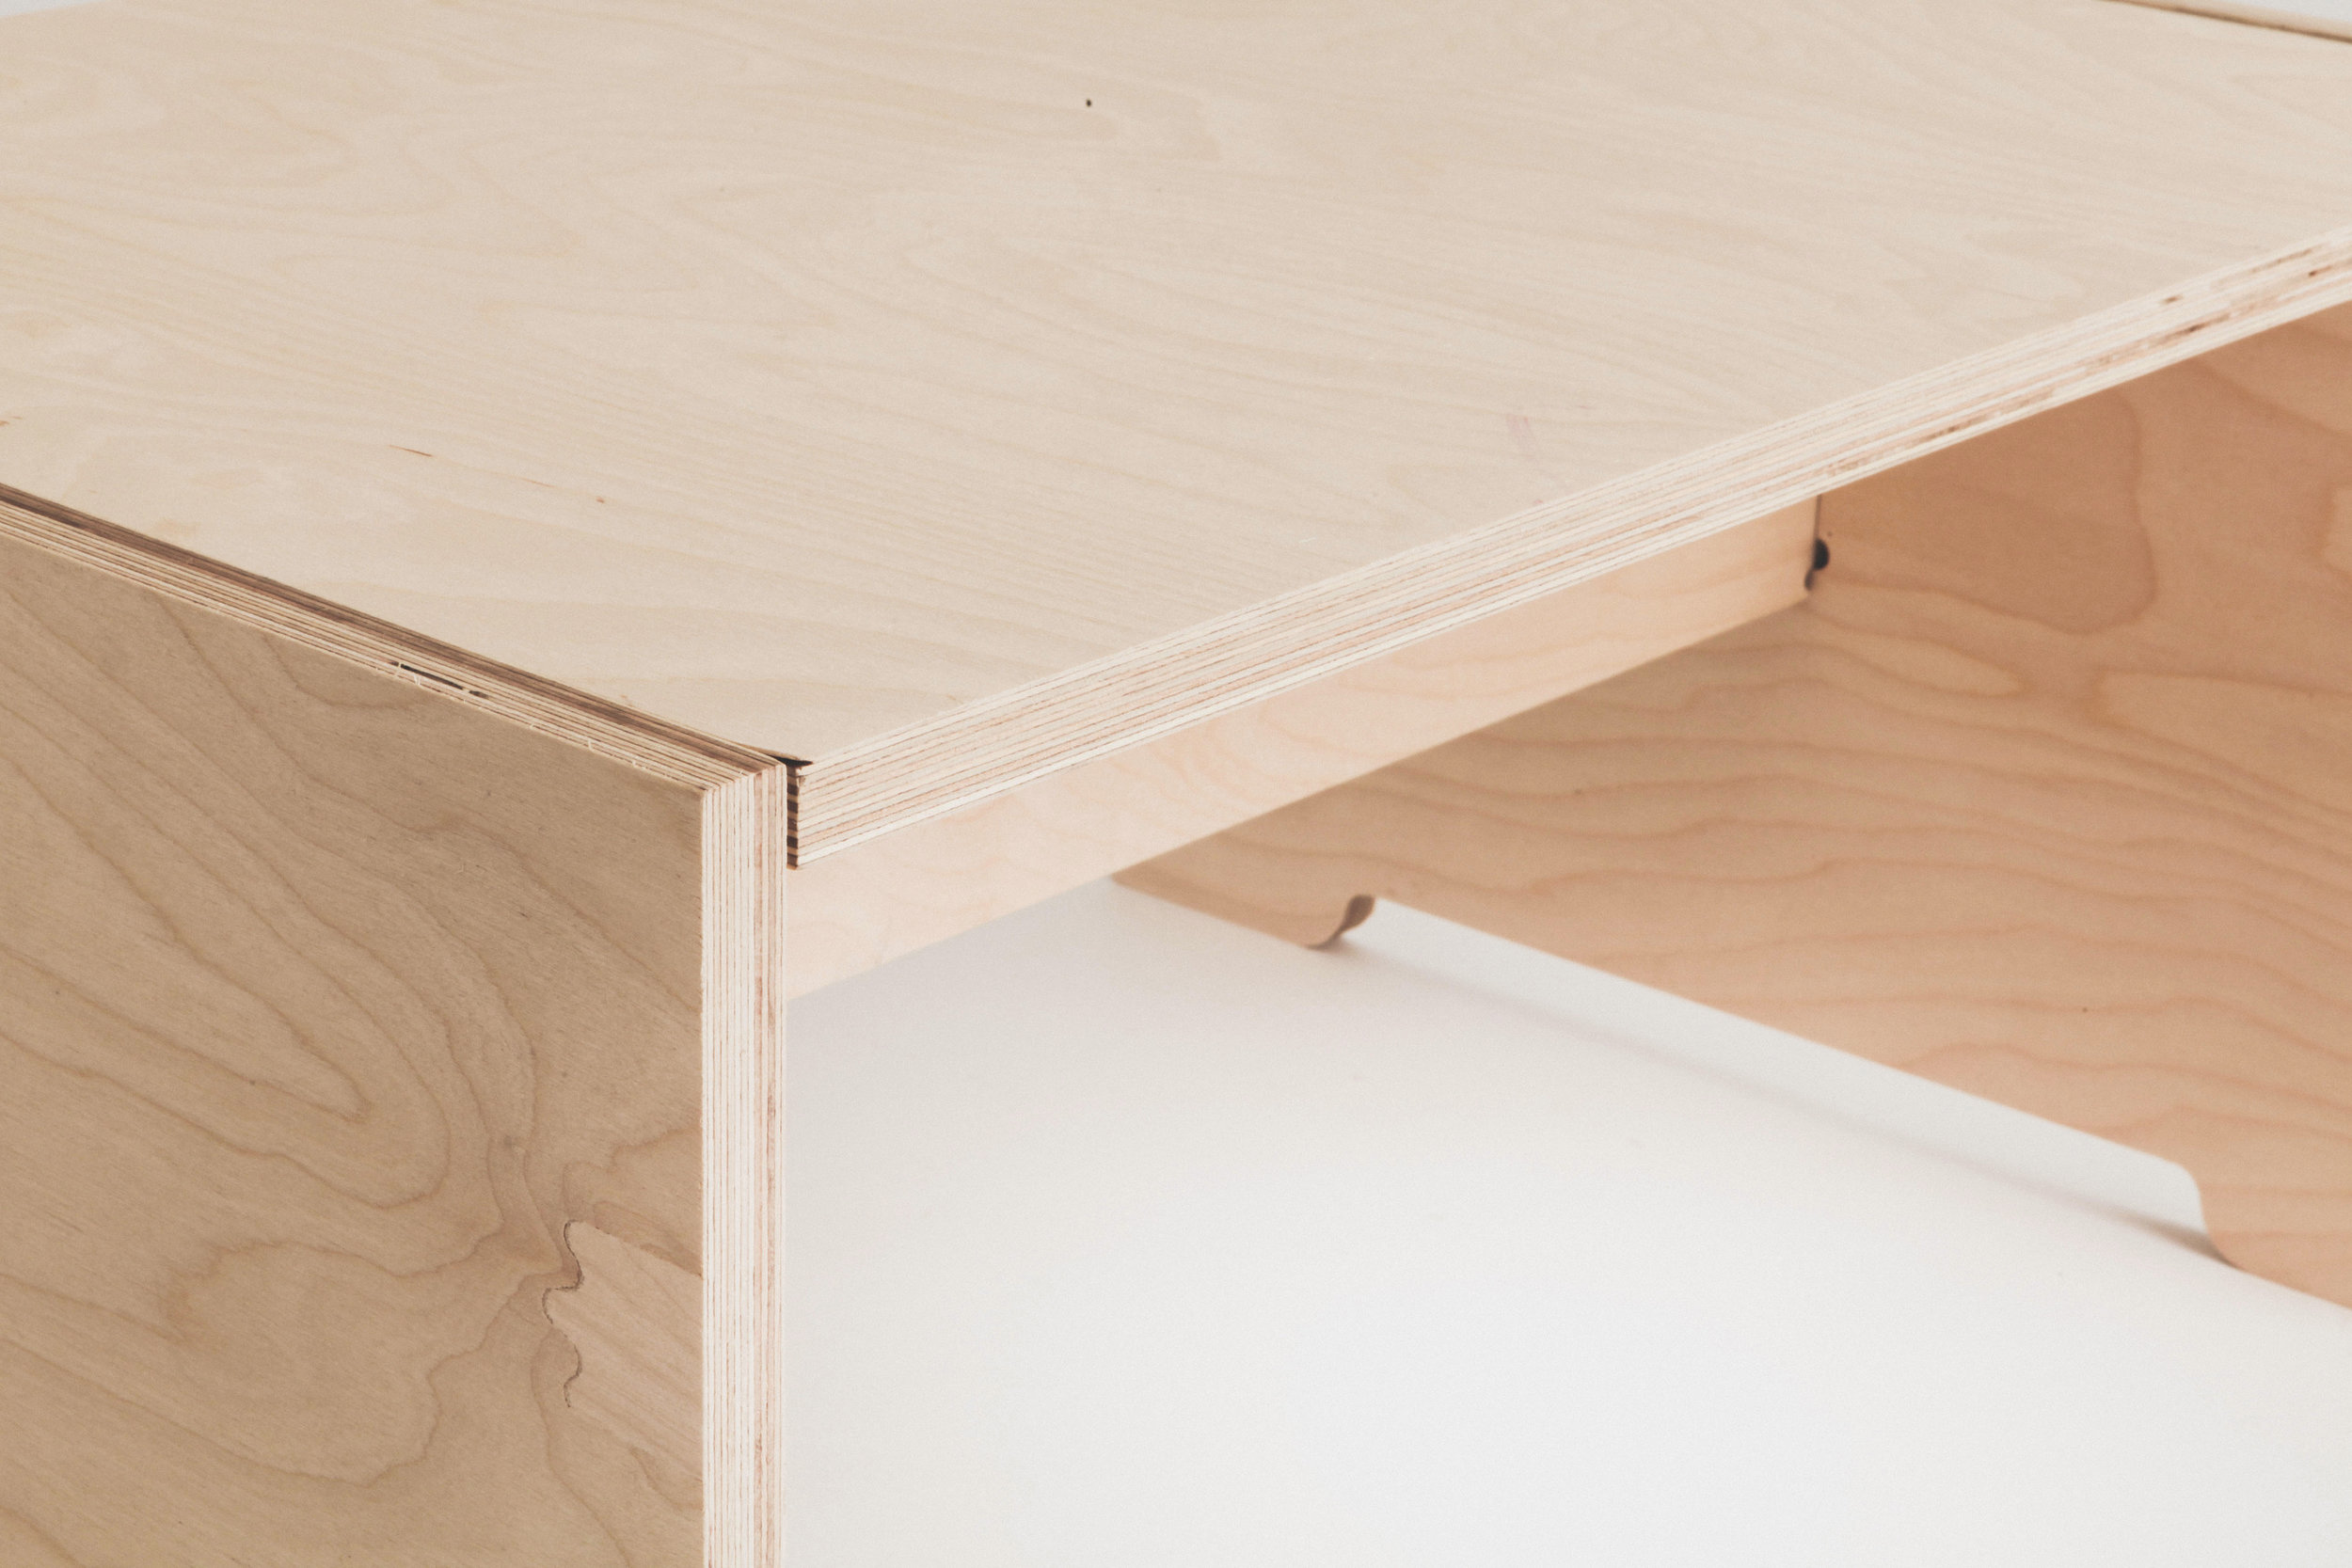 coffeeTable_detail1.jpg